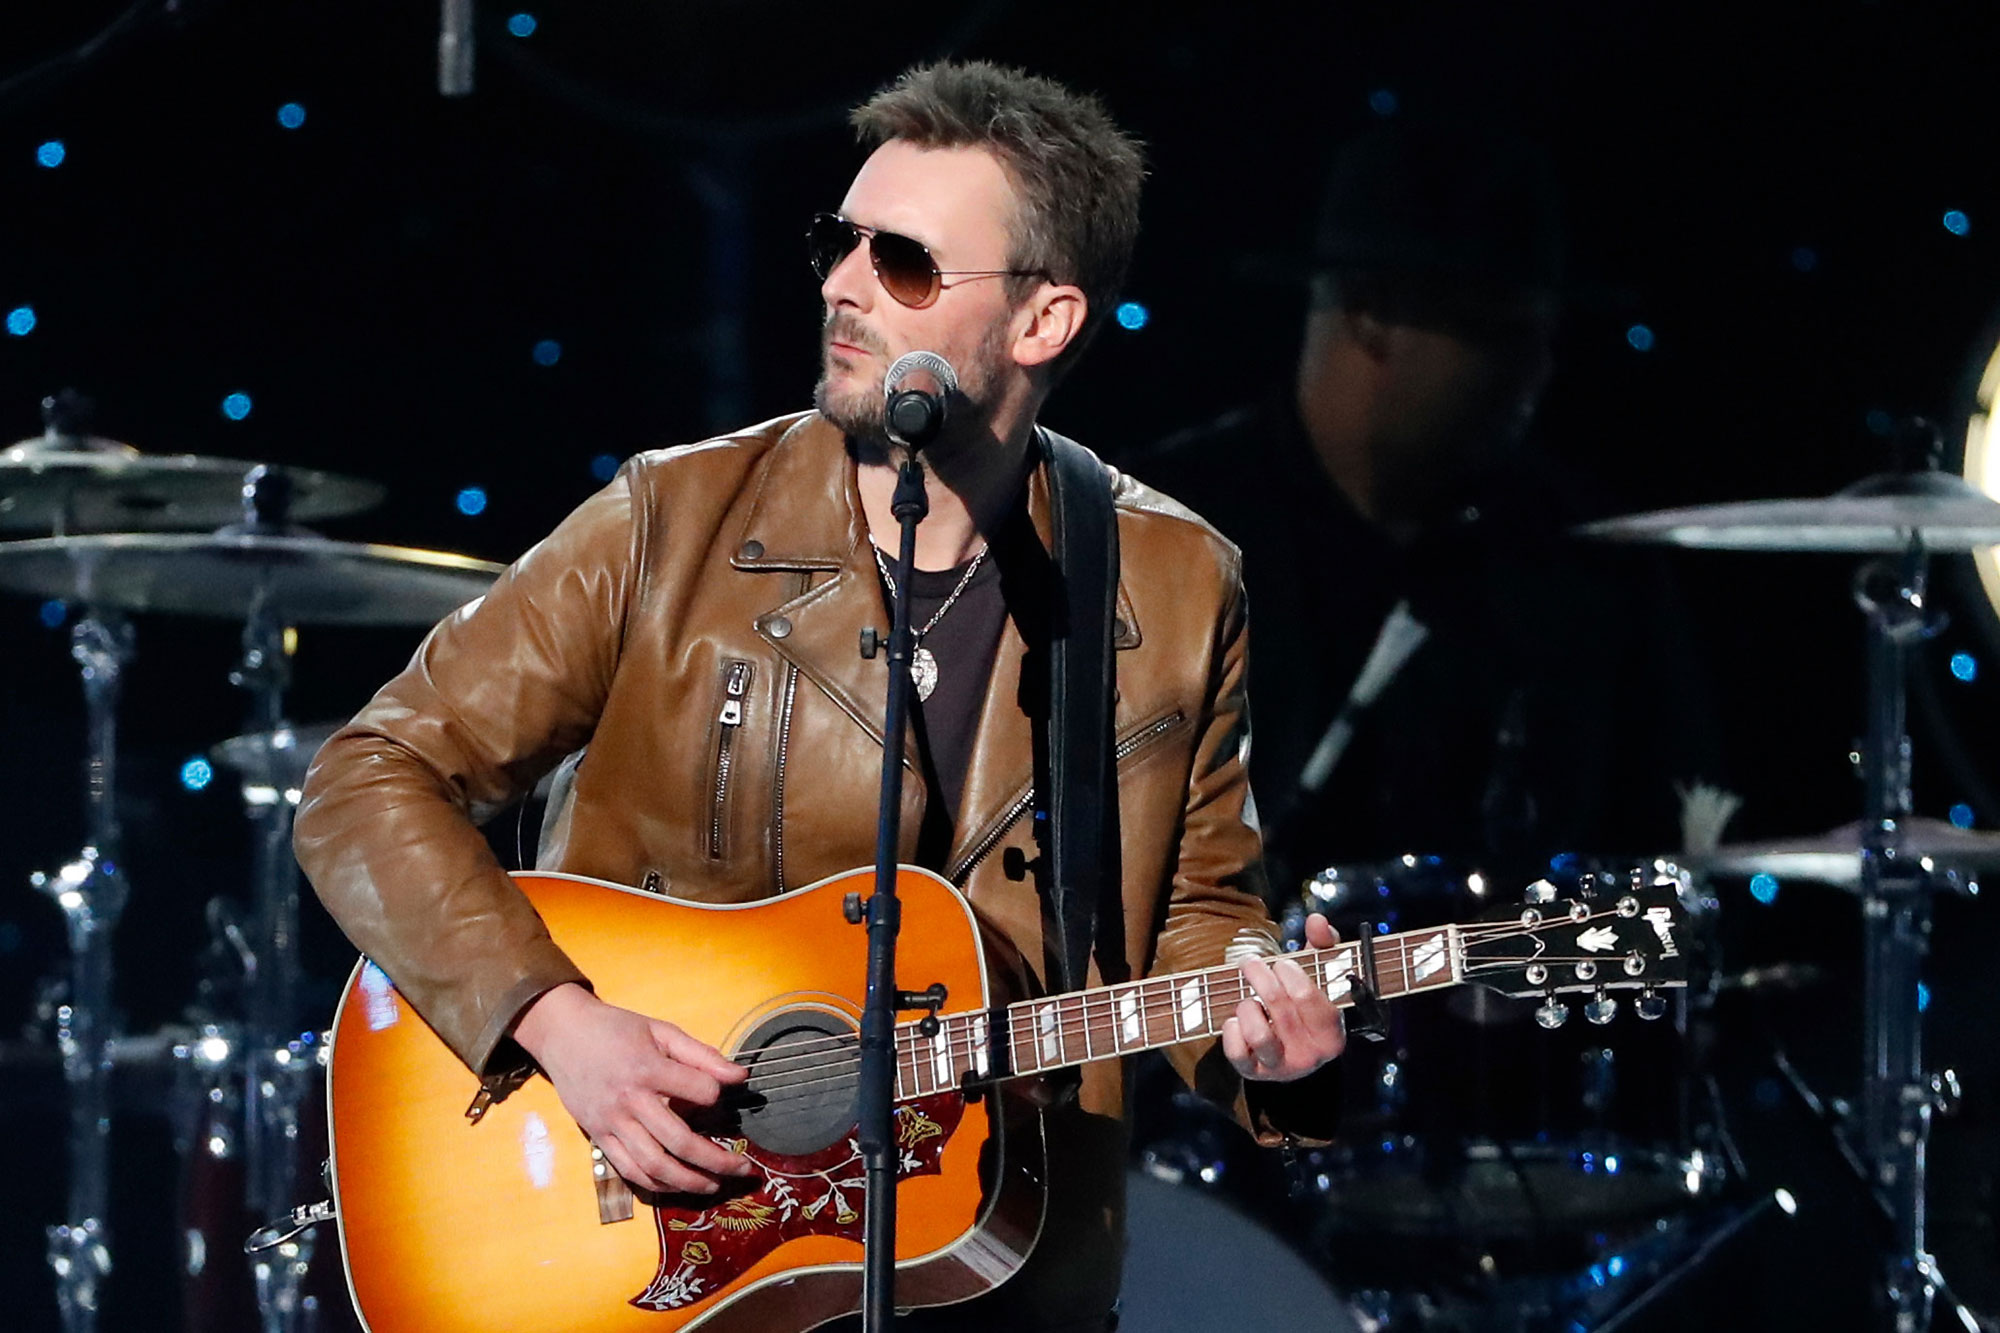 Zerchoo Music - 10 Best Country, Americana Songs to Hear Now